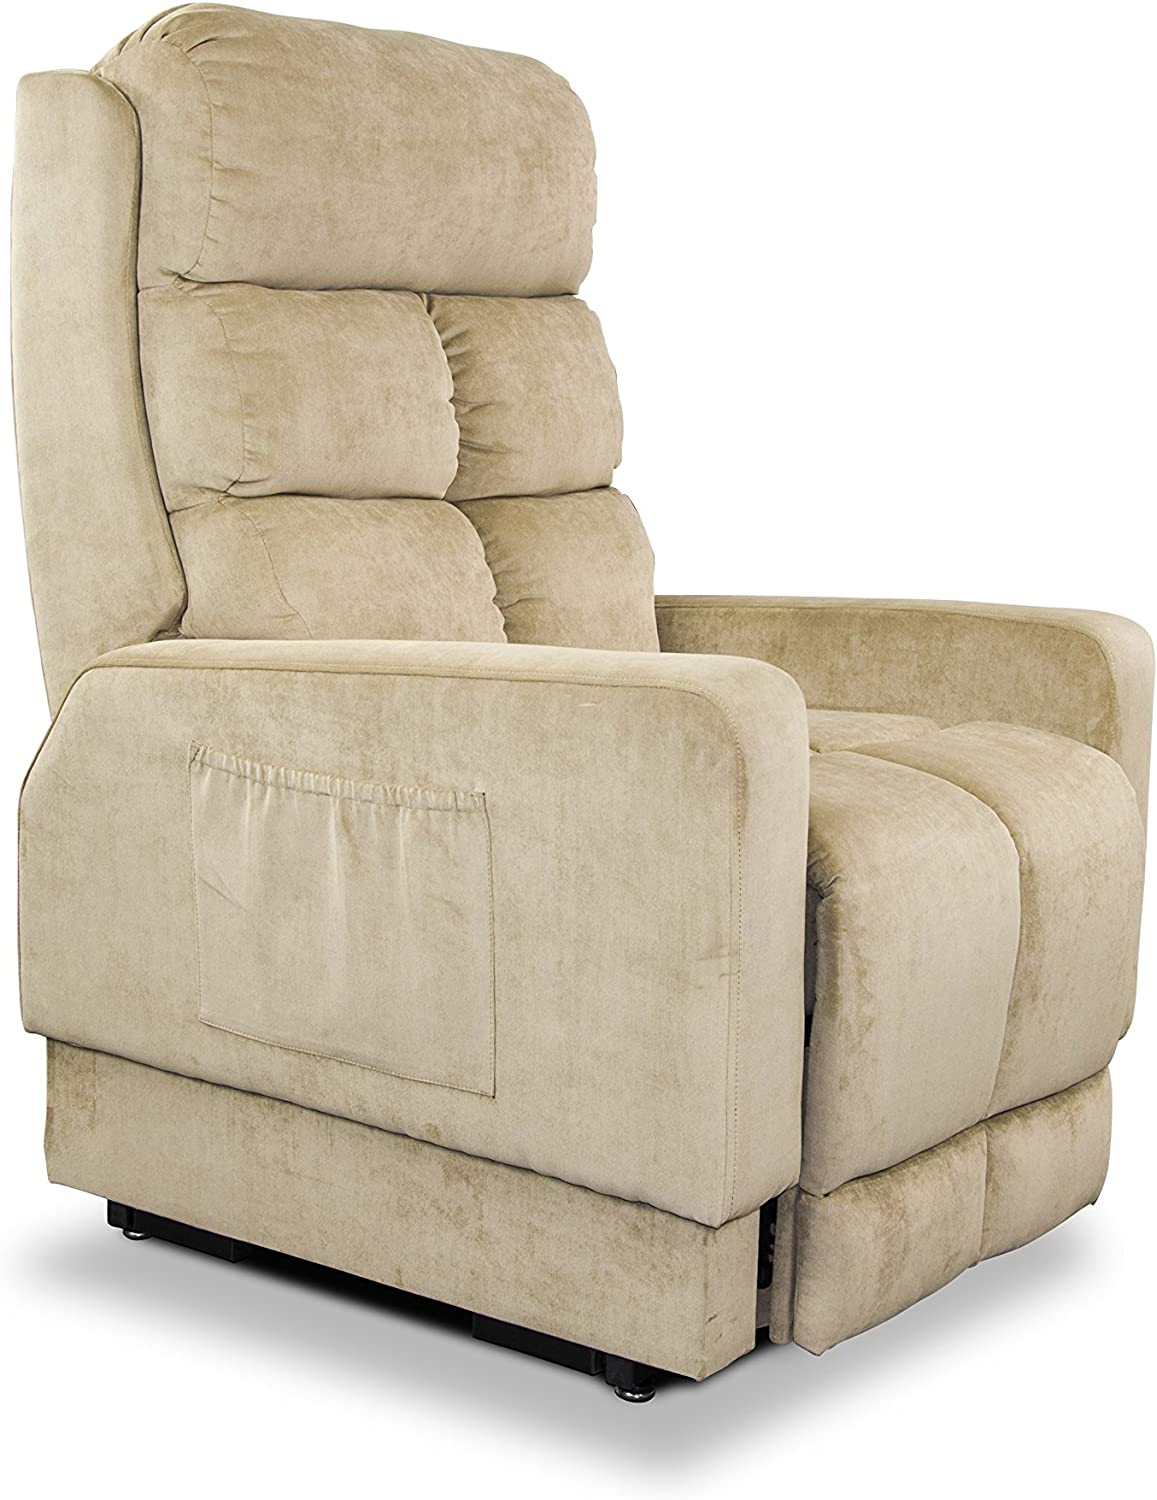 Good Lift Chair for Heart Condition